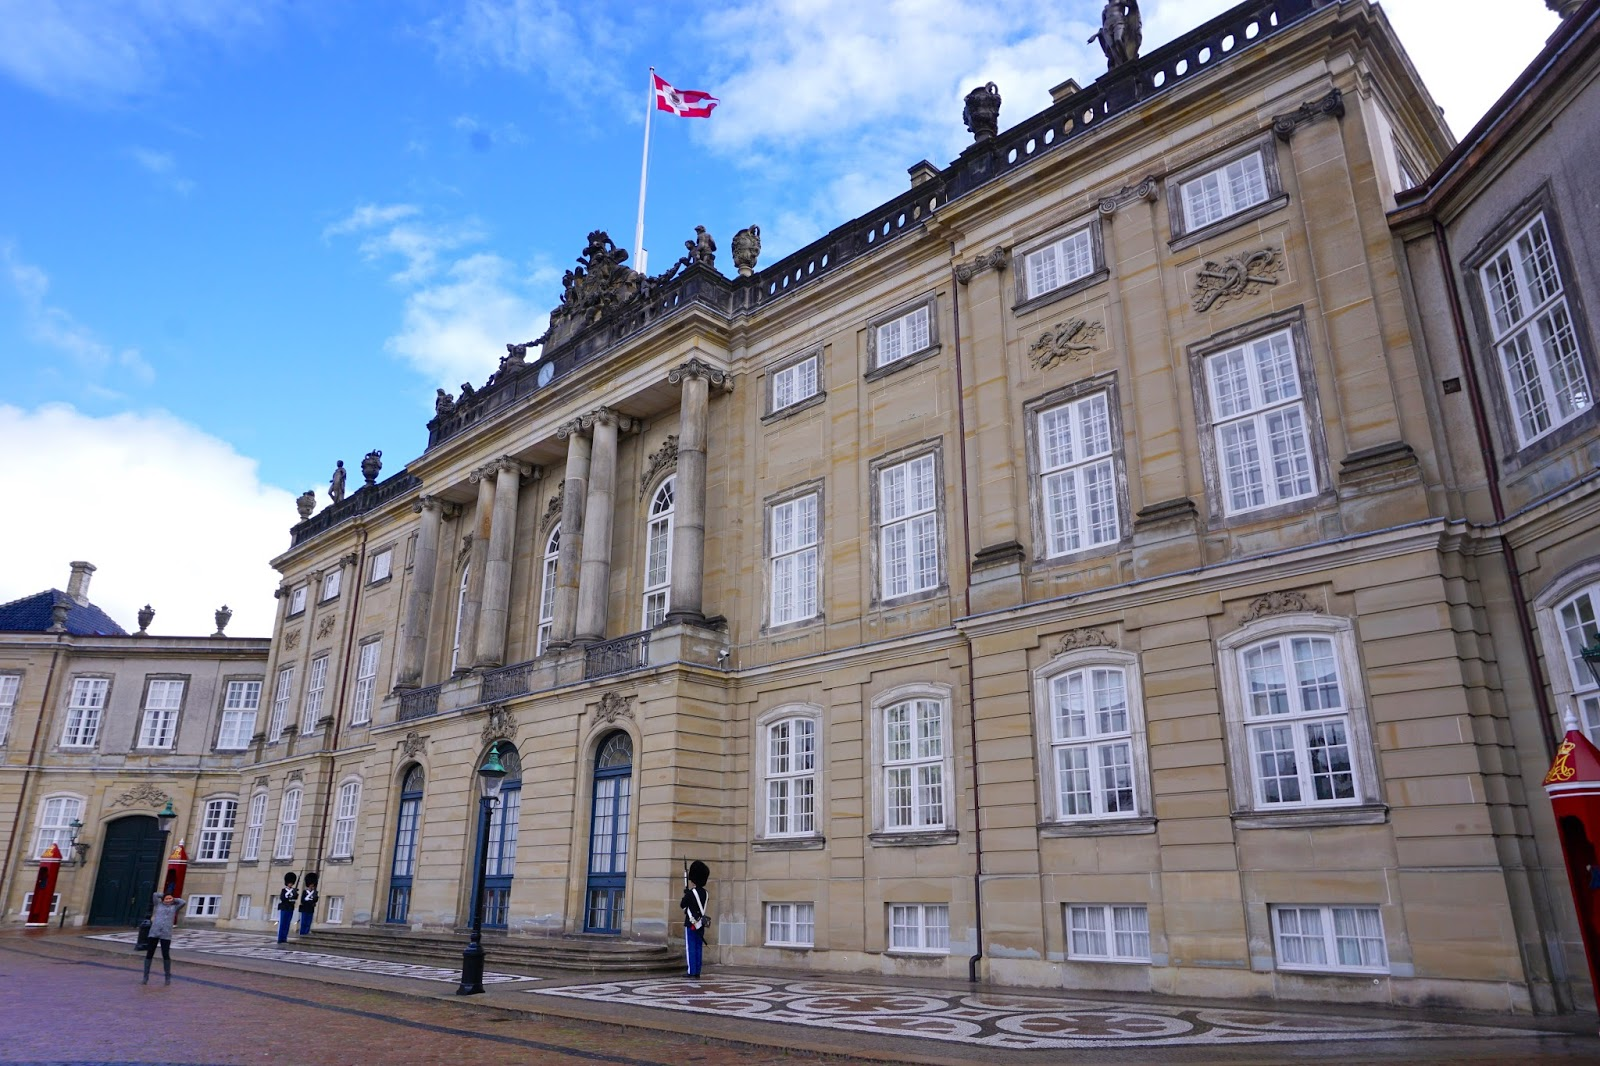 Guards outside of Amalienborg Palace in Copenhagen